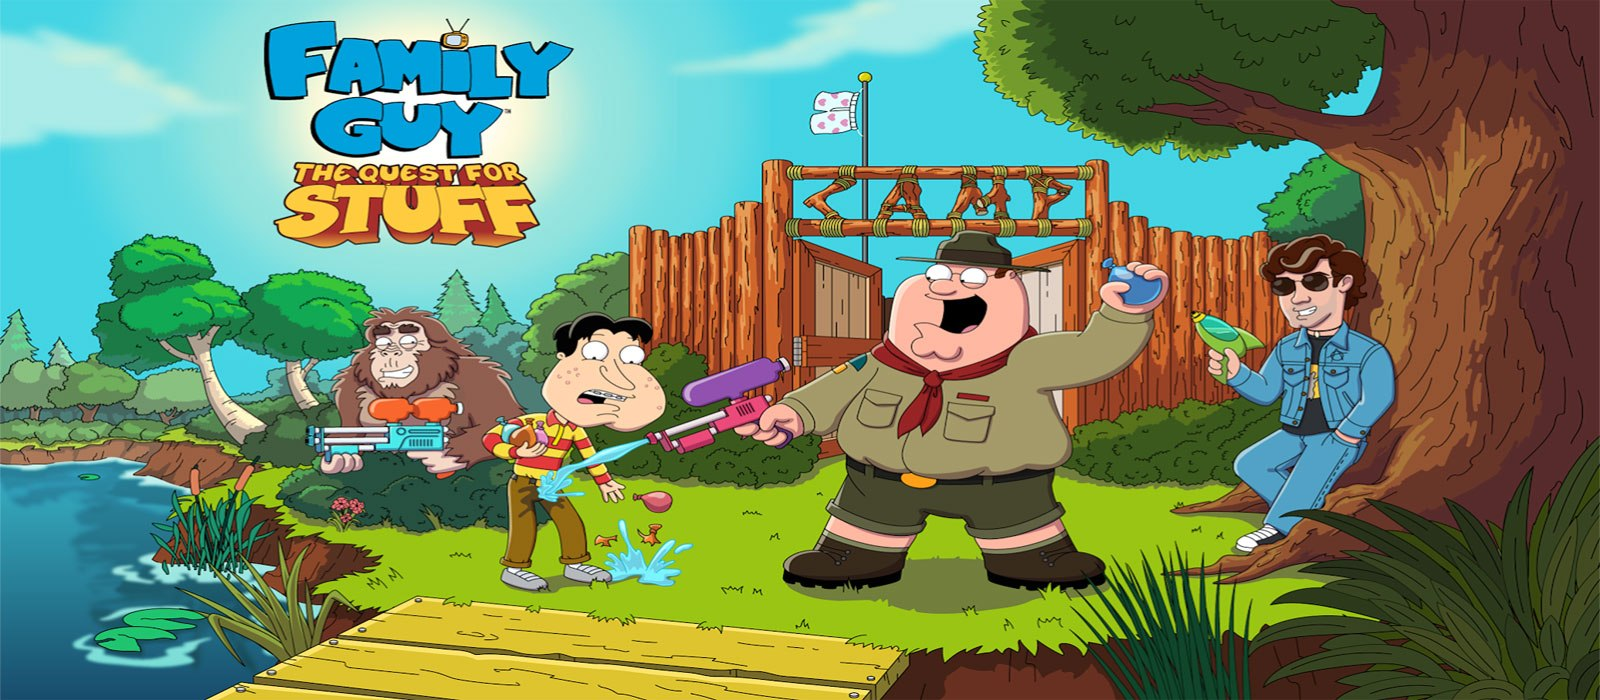 family guy quest for stuff mod apk unlimited clams